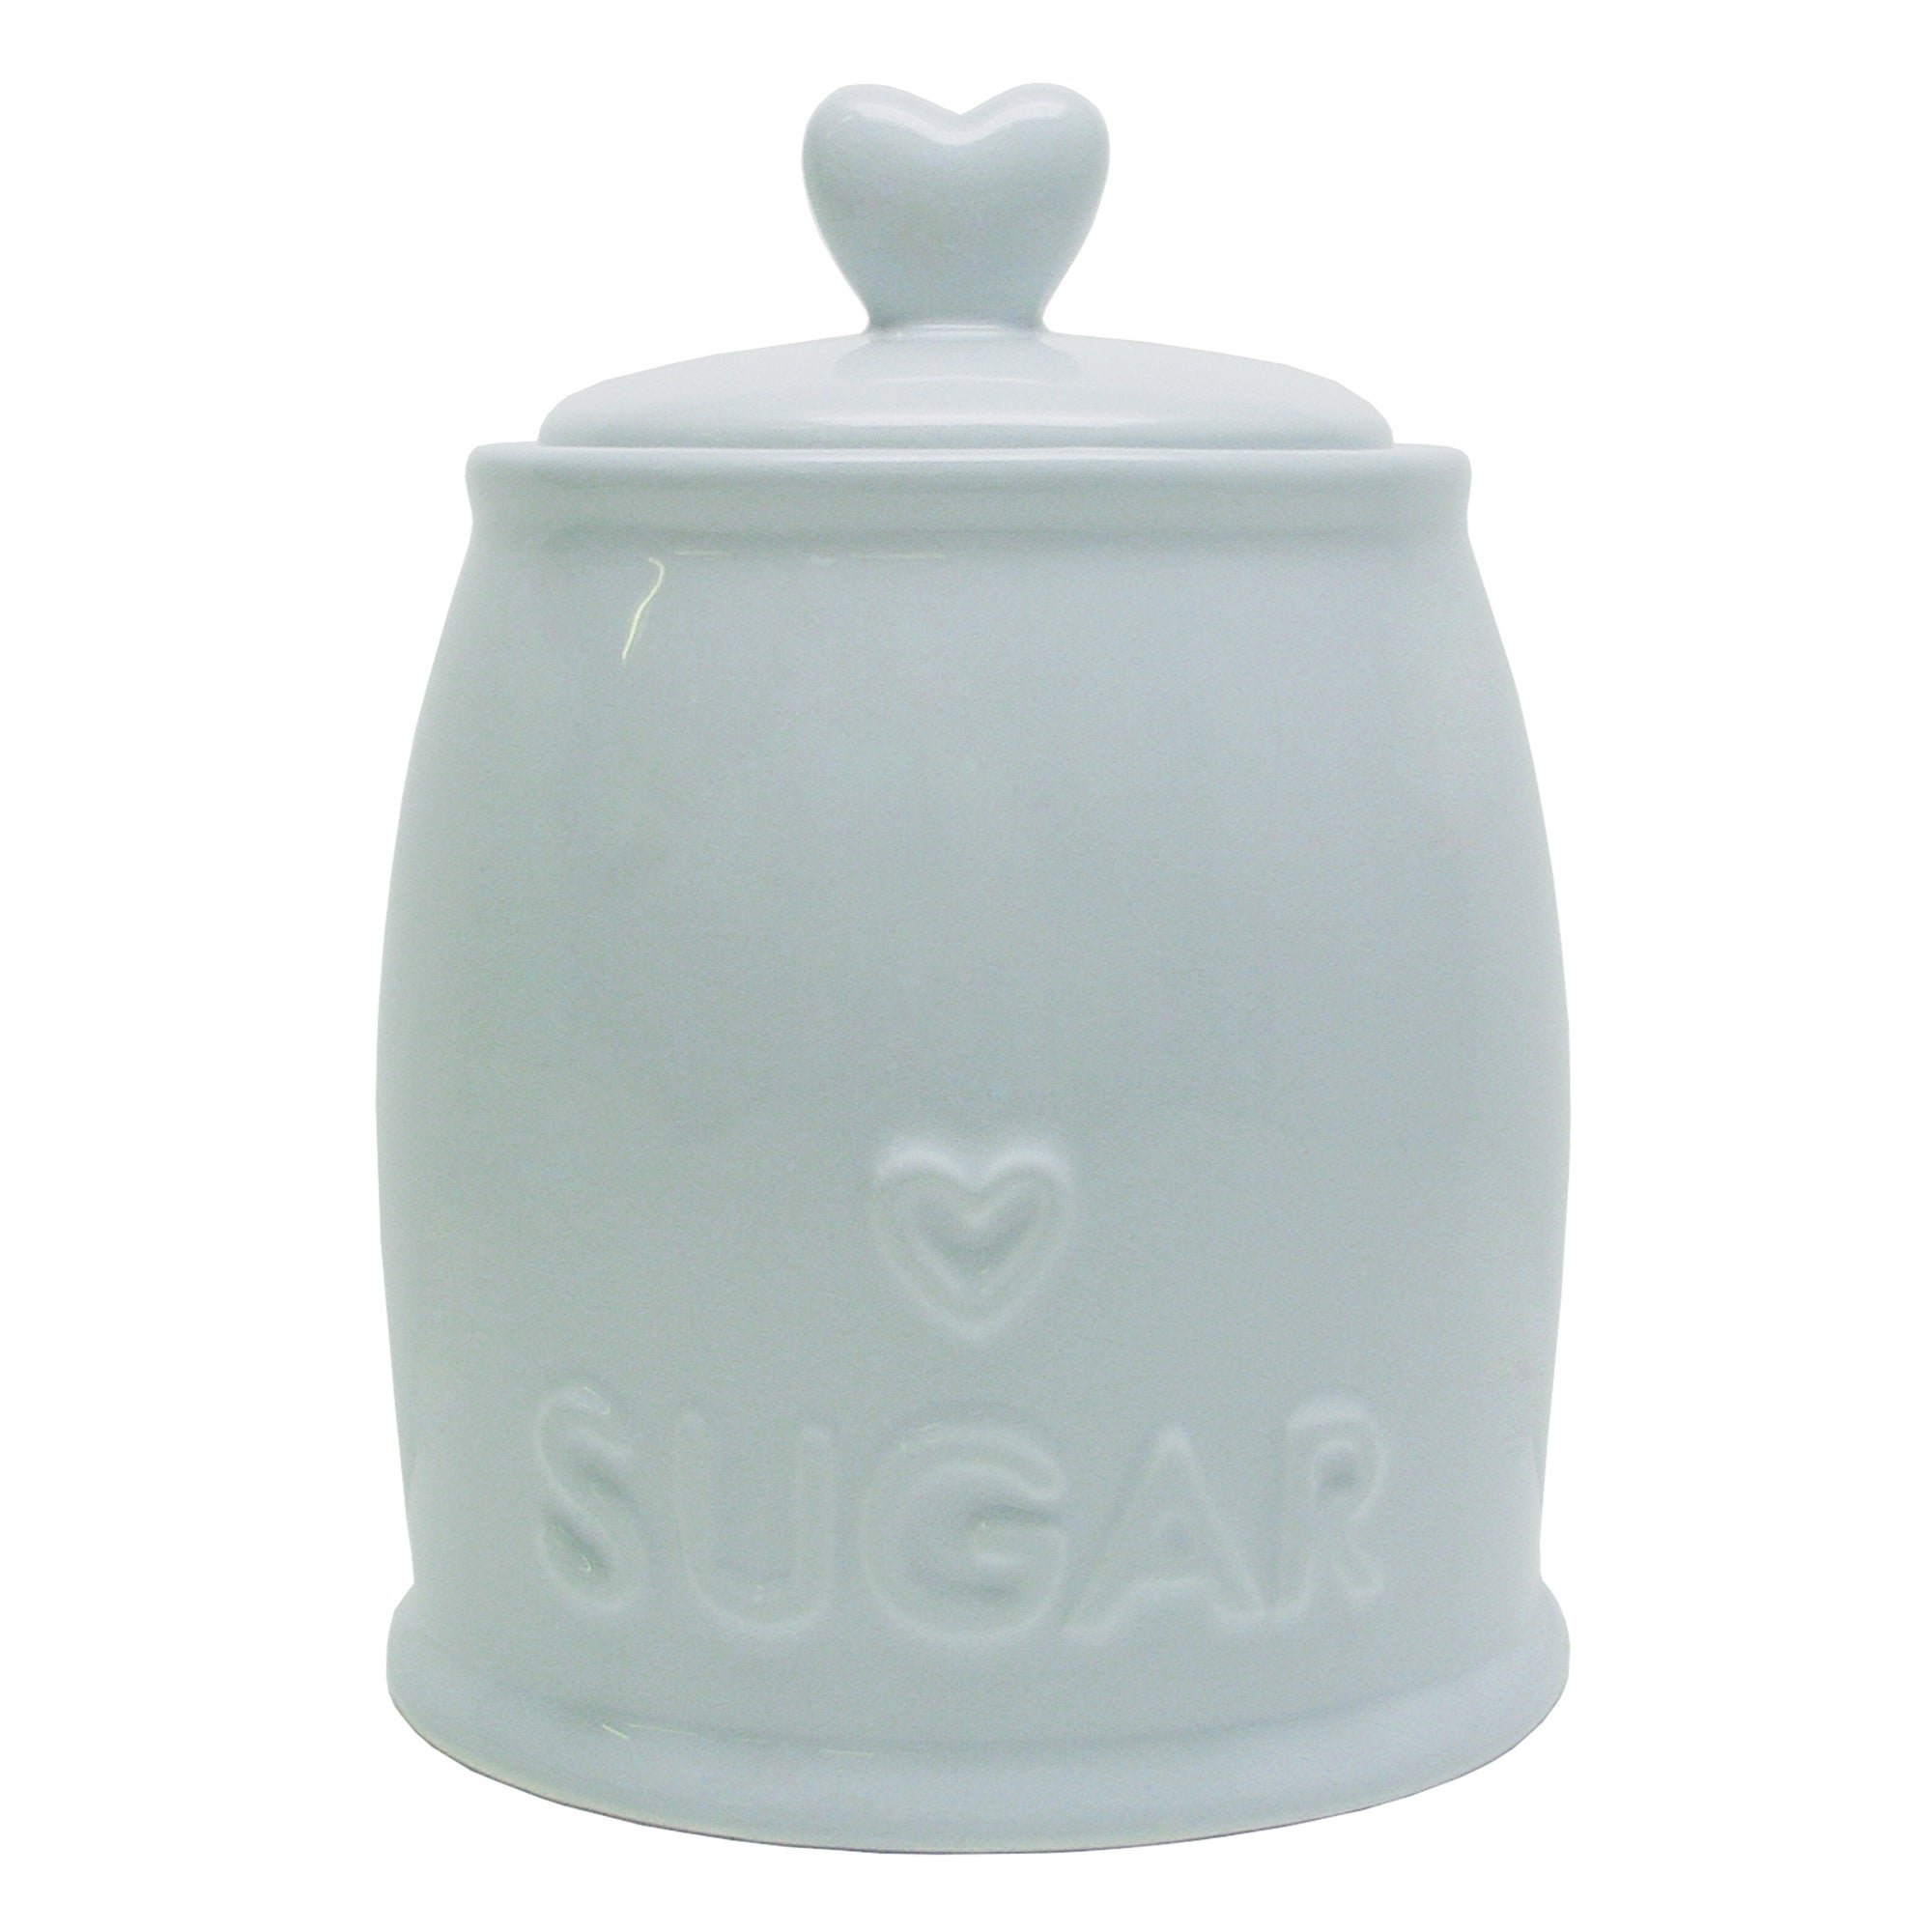 Country Heart DuckEgg Sugar Storage Jar Duck Egg Blue